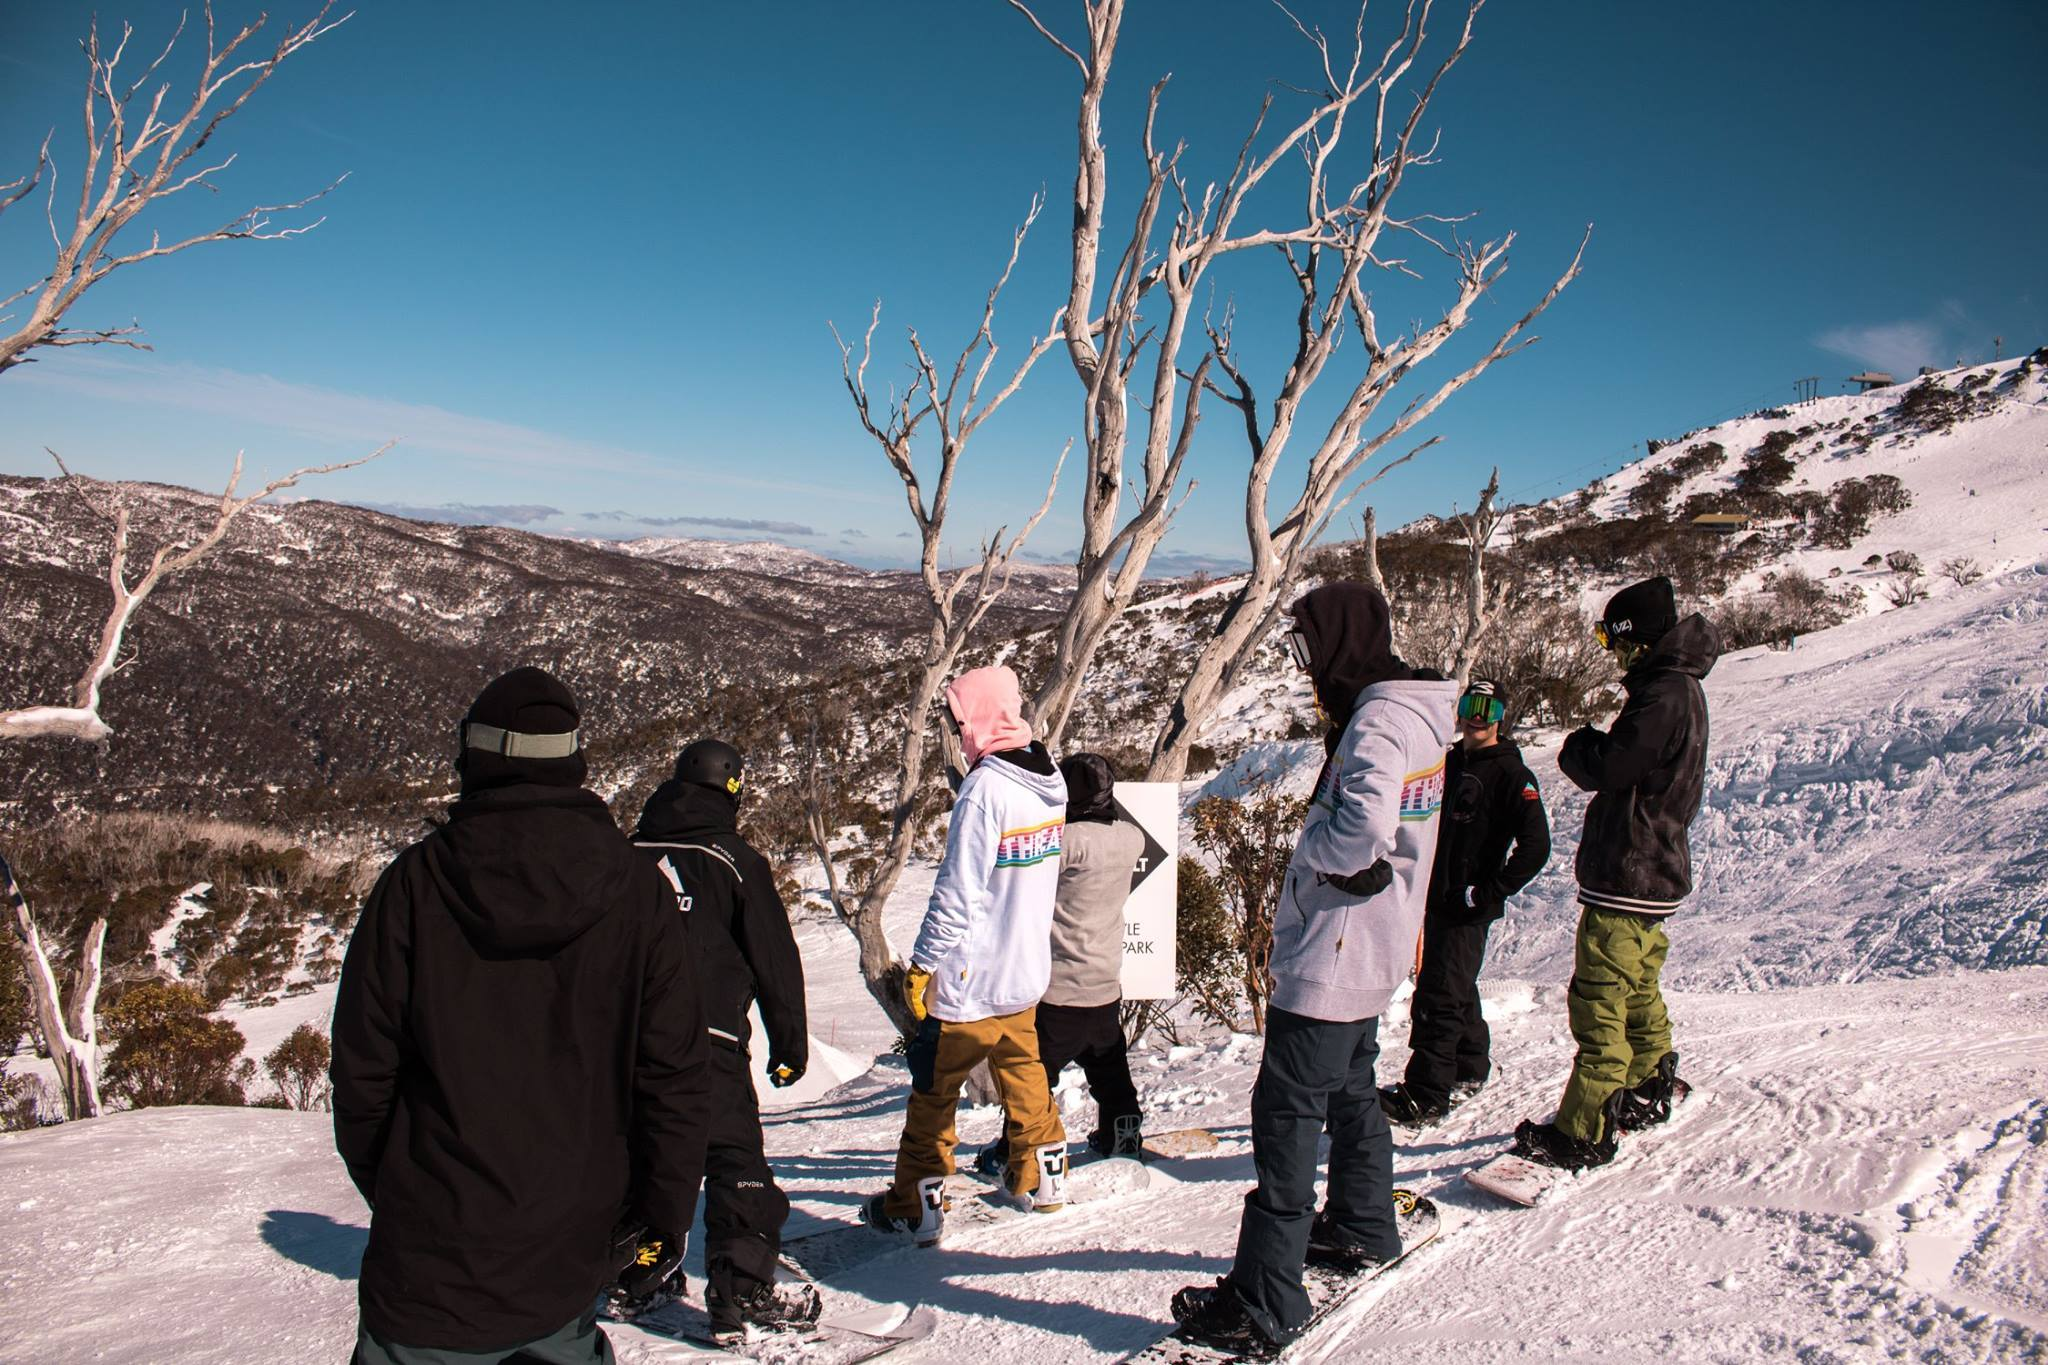 - A few weeks ago I managed to squeeze in a snow trip to Mt Buller and Thredbo to tame my snowboard cravings. Timed it perfectly with warm and sunny conditions, riding with a great crew you can never have a bad time.